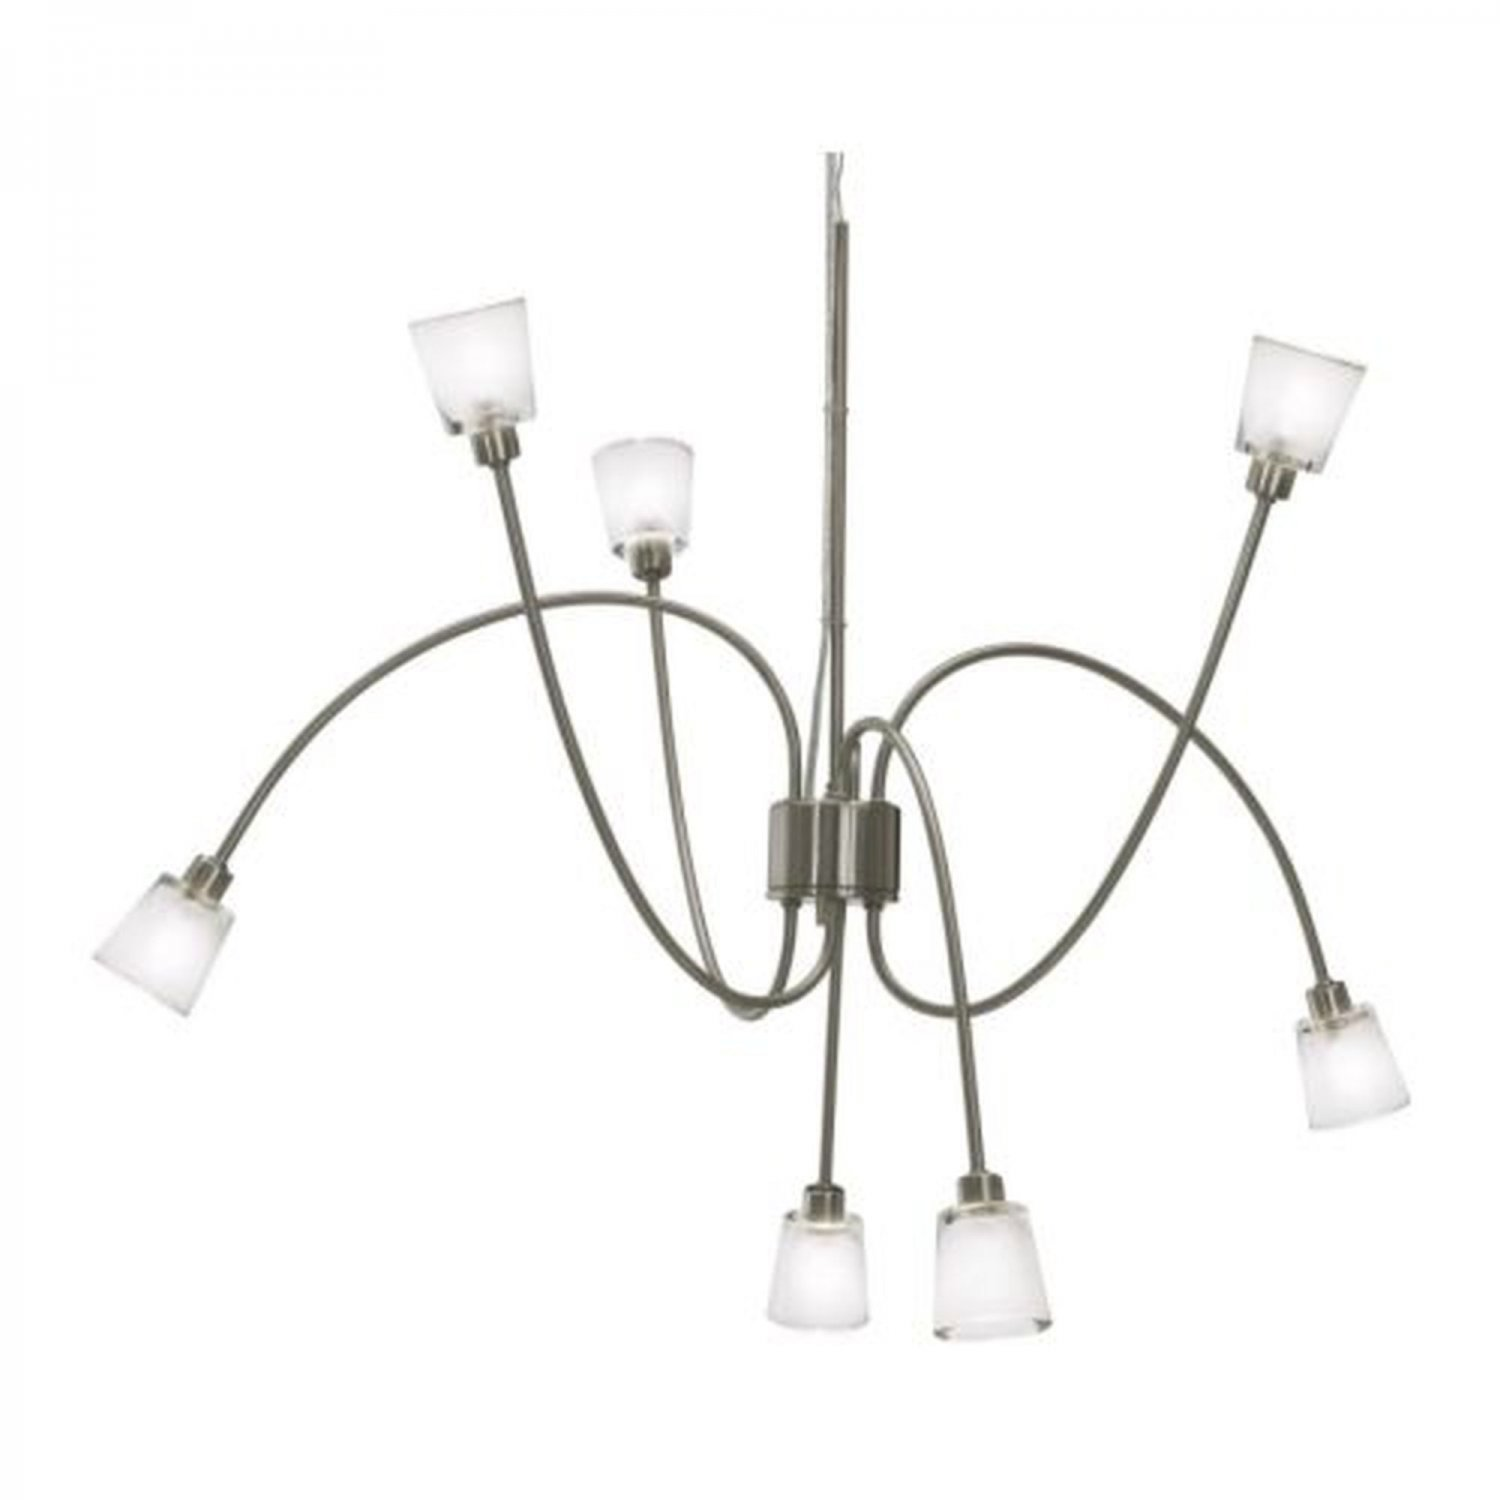 Ikea kryssbo chandelier light pendant lamp glass nickel steel adjustable 7 arm - Luminaire suspension ikea ...